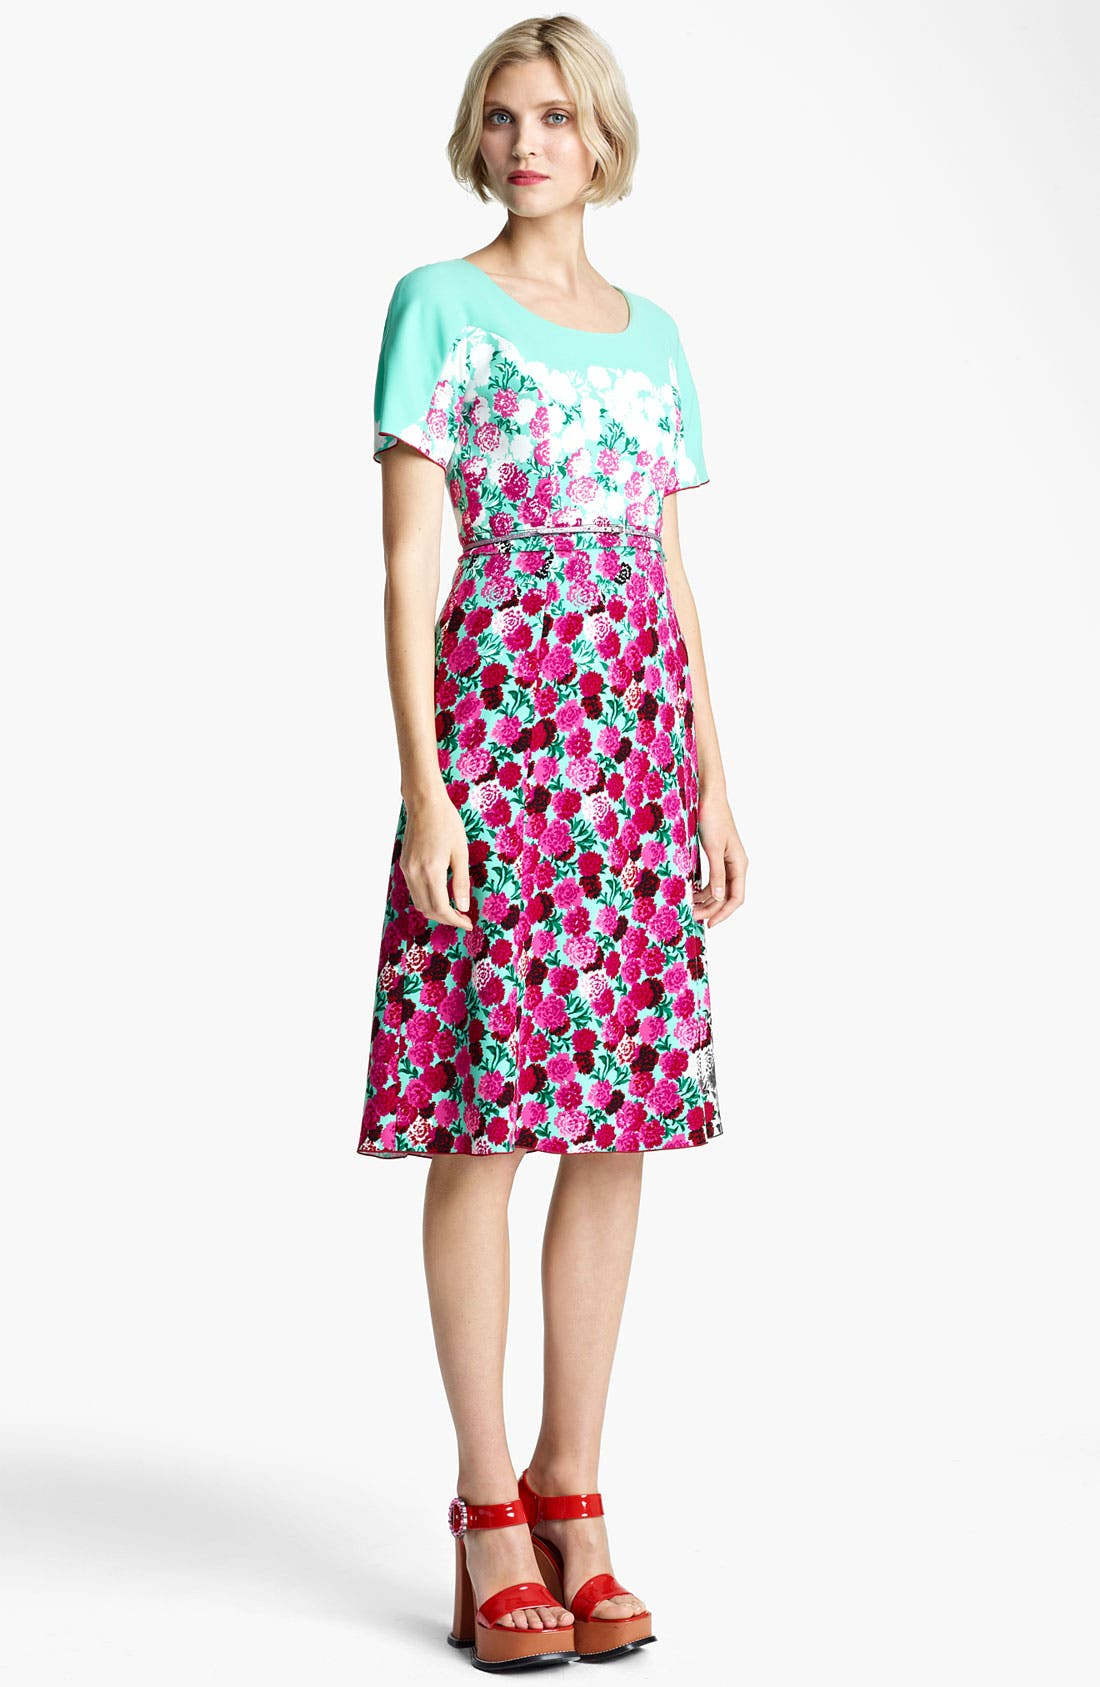 Main Image - MARC JACOBS Dégradé Floral Dress